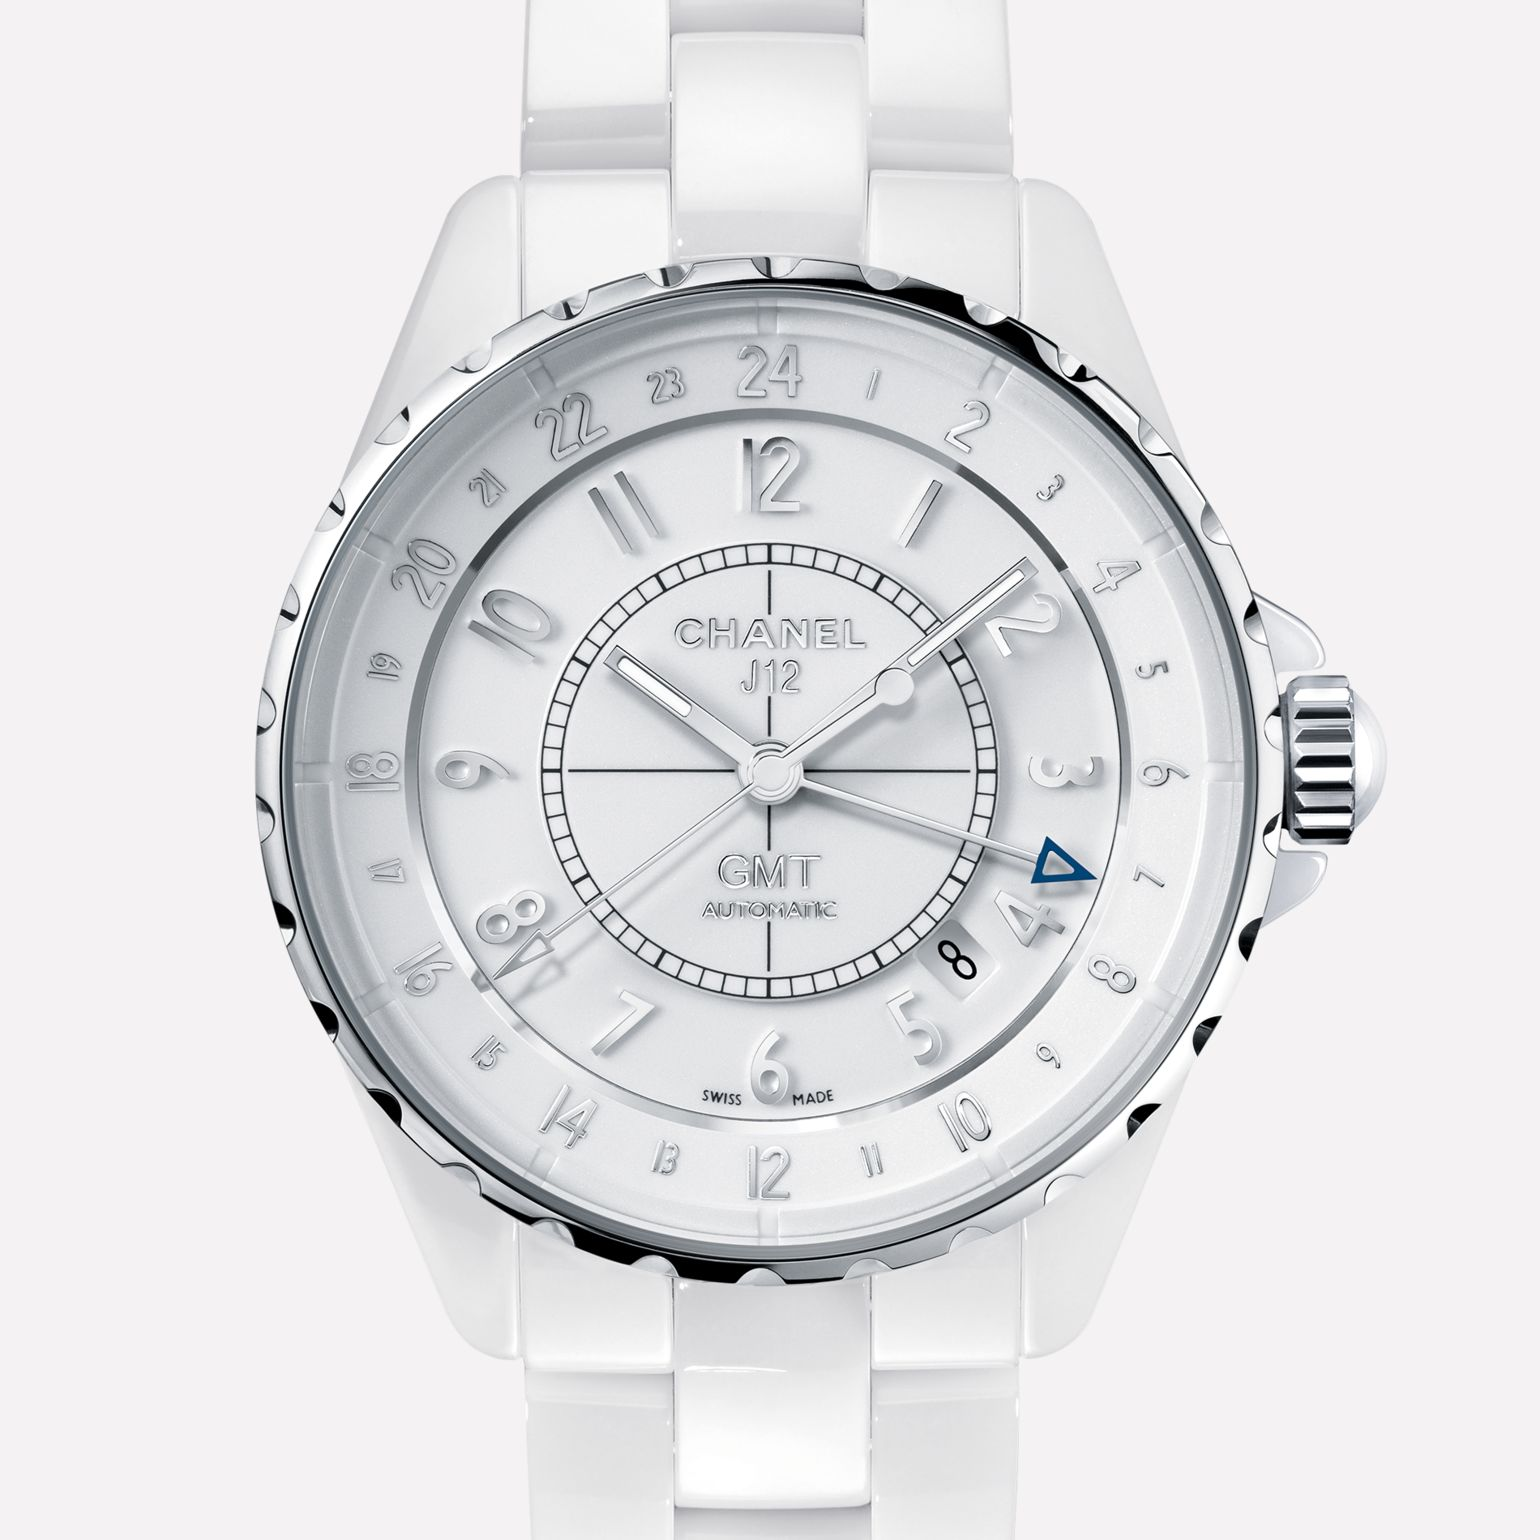 J12 GMT White highly resistant ceramic and steel